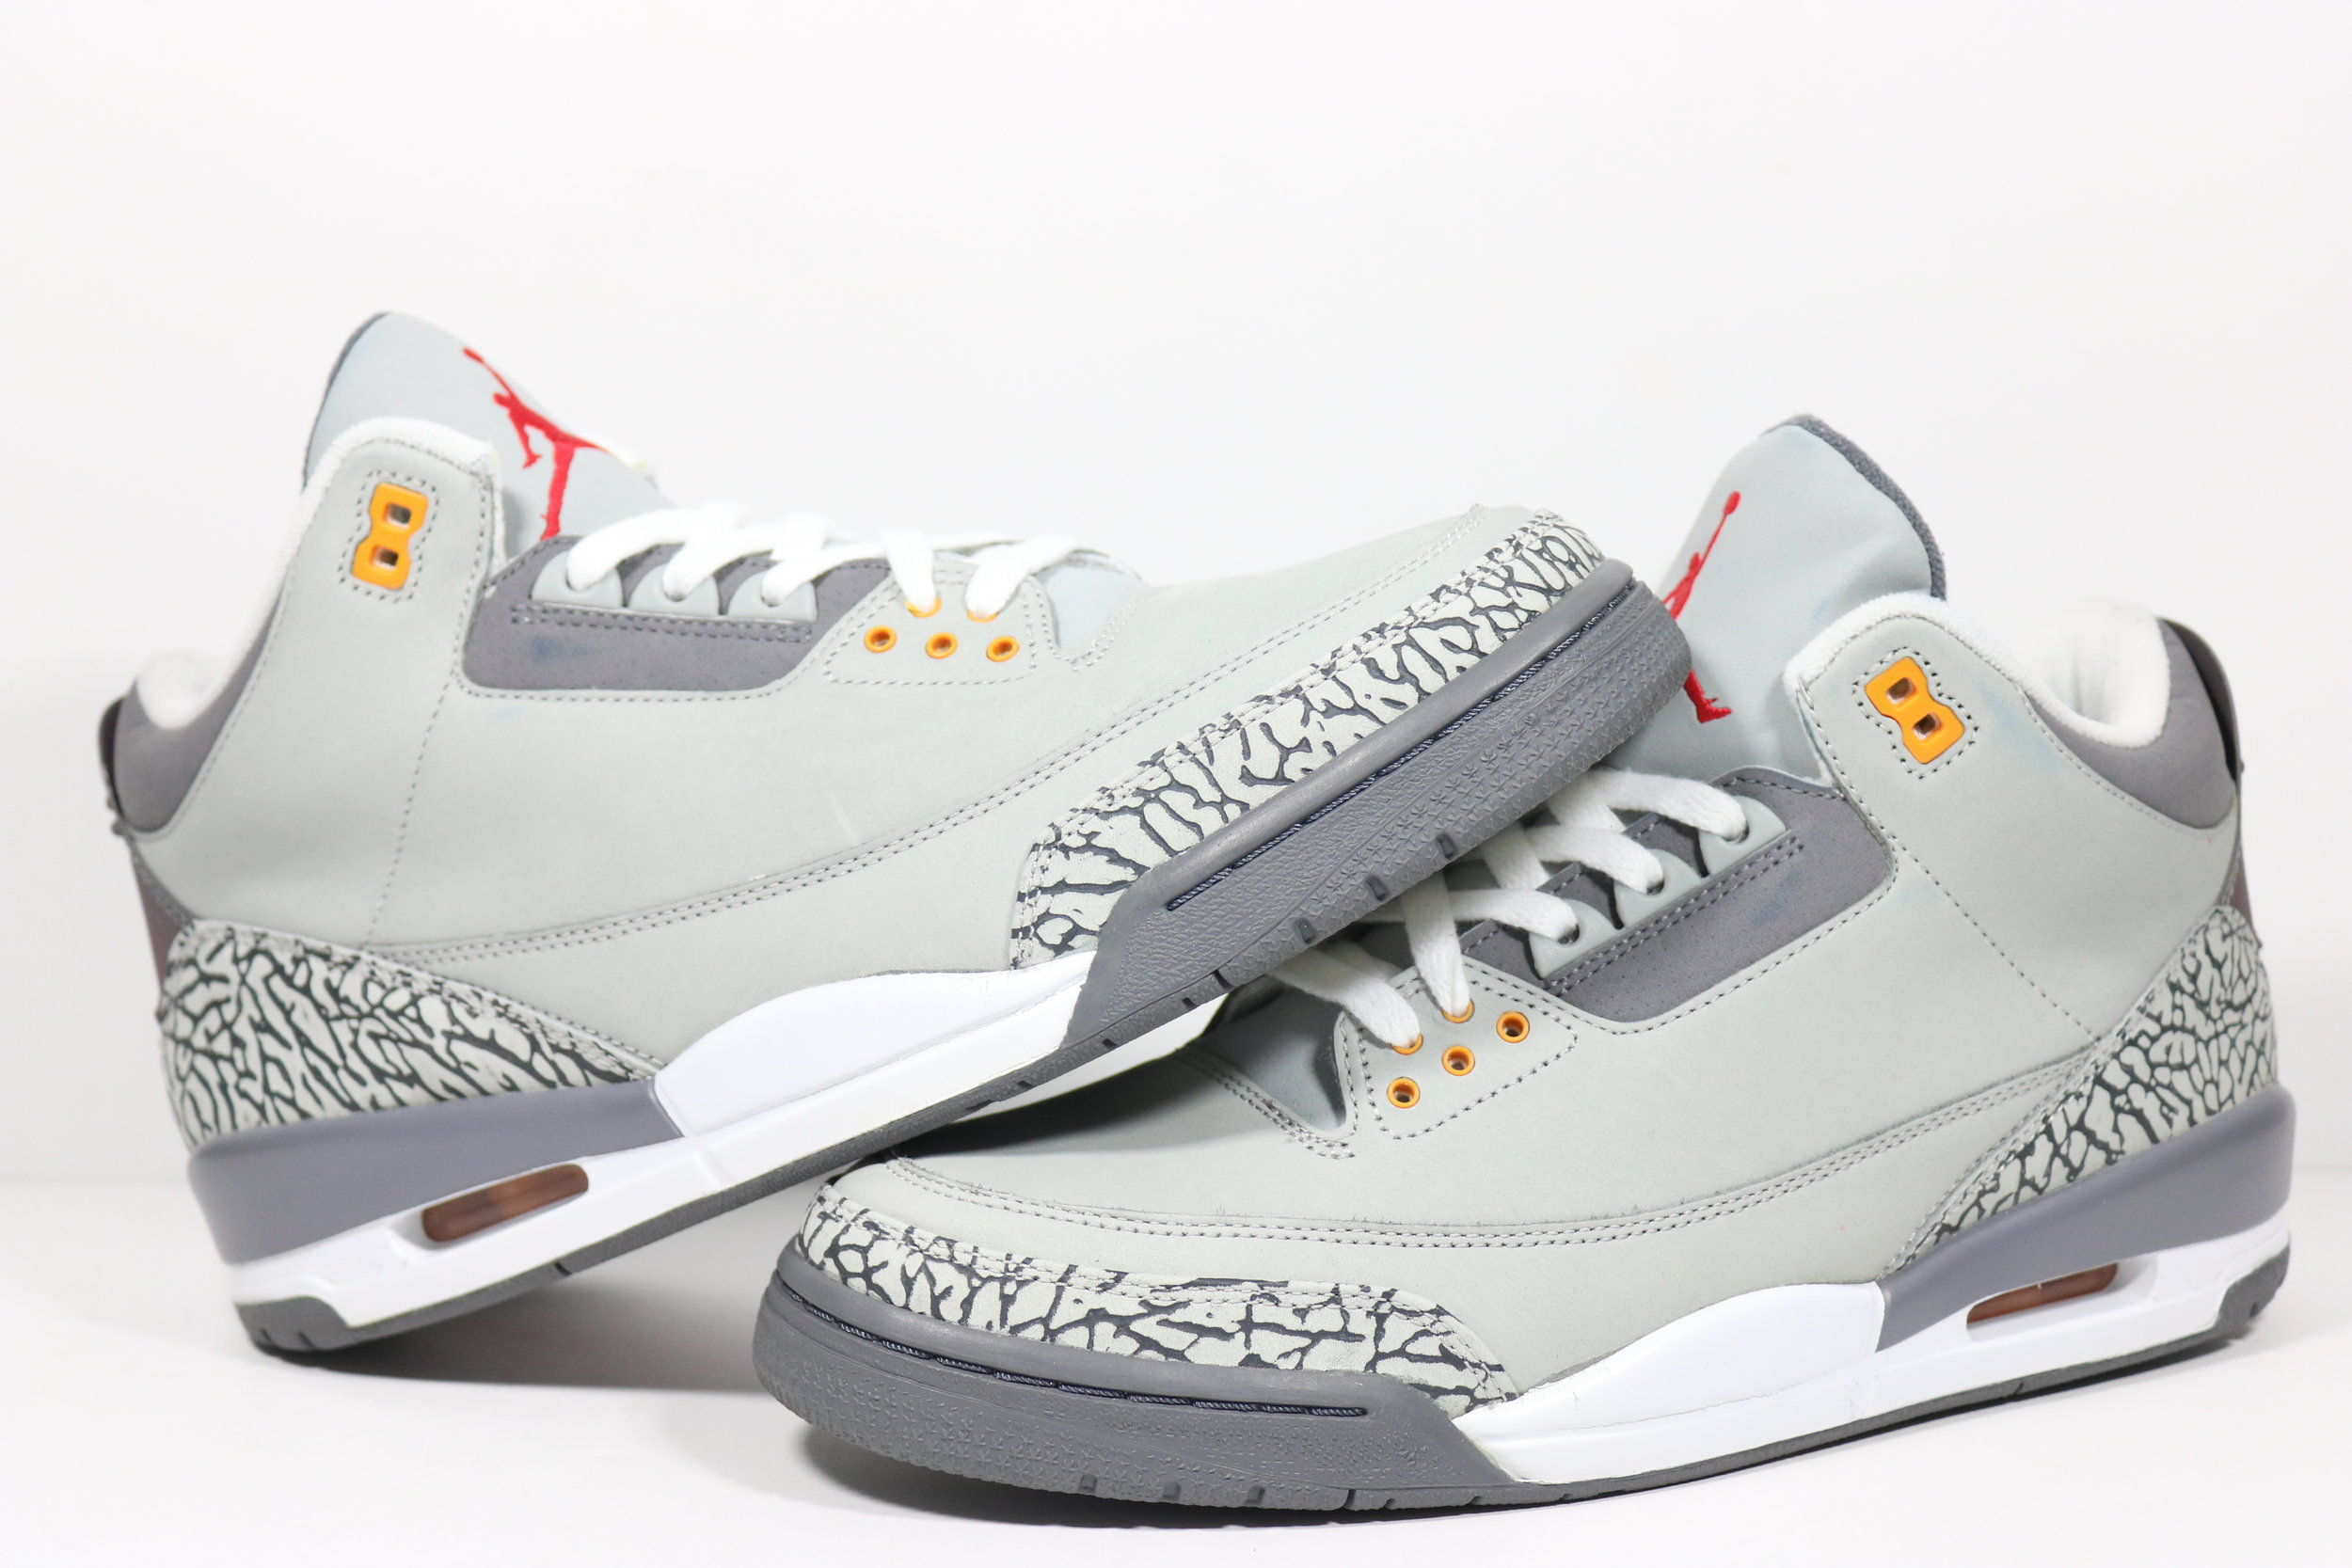 premium selection 7af86 0572a US 11.0 - NIKE AIR JORDAN 3 RETRO LS